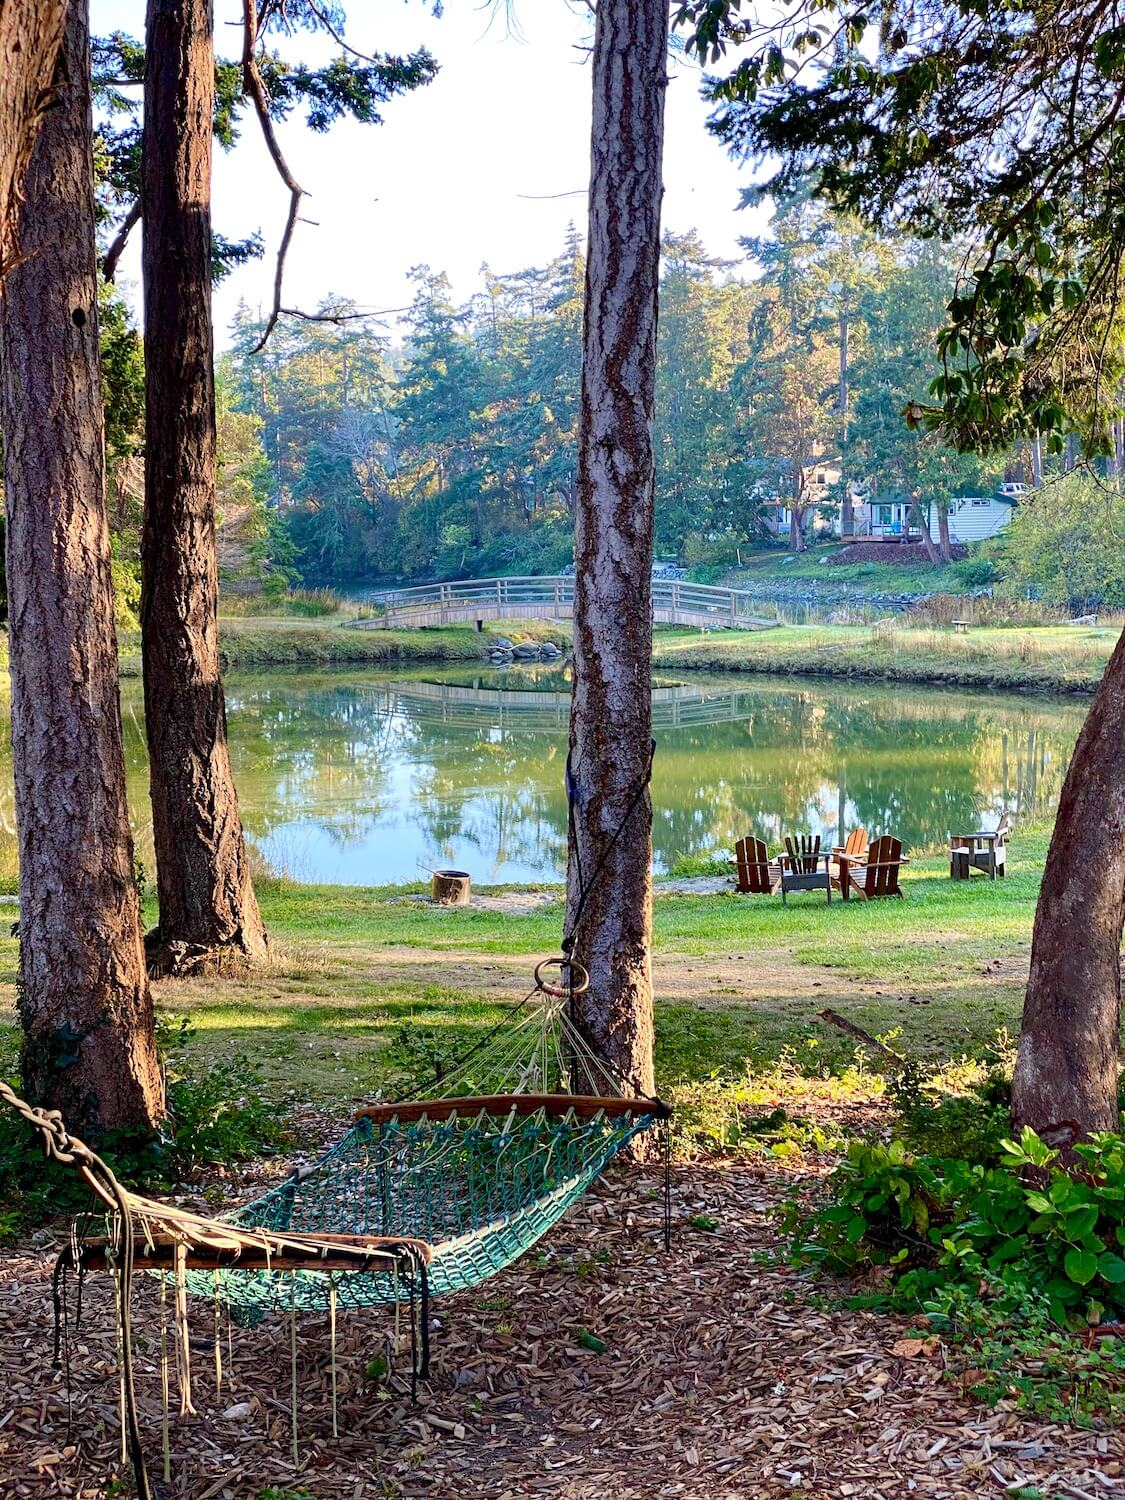 A peaceful forest setting shows a green woven hammock hanging between two pine trees that looks out toward a green lagoon with adairondack chairs situated in clusters facing the water. There is green grass and a wooden bridge that arches over the waterway leading to nearby Penn Cove.